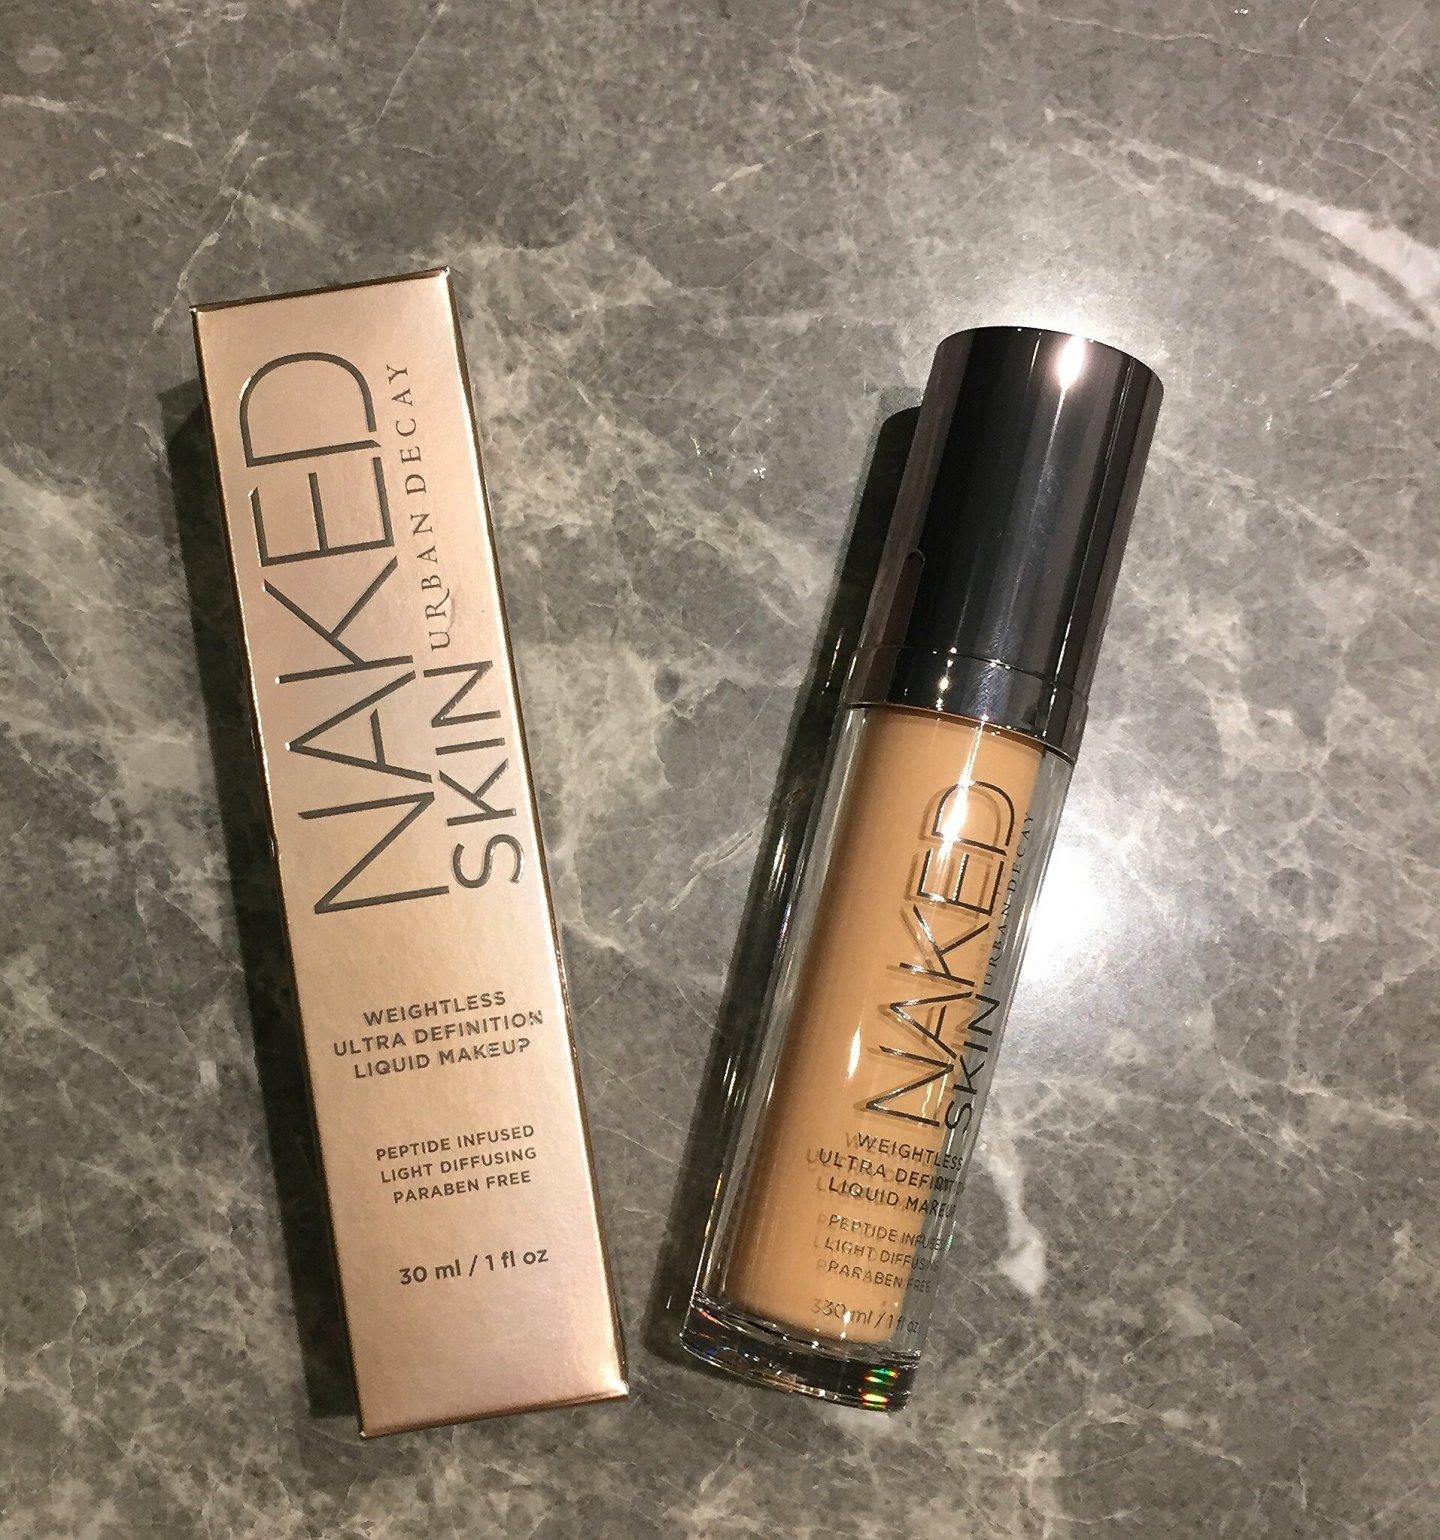 urban decay naked skin foundation review 2.0